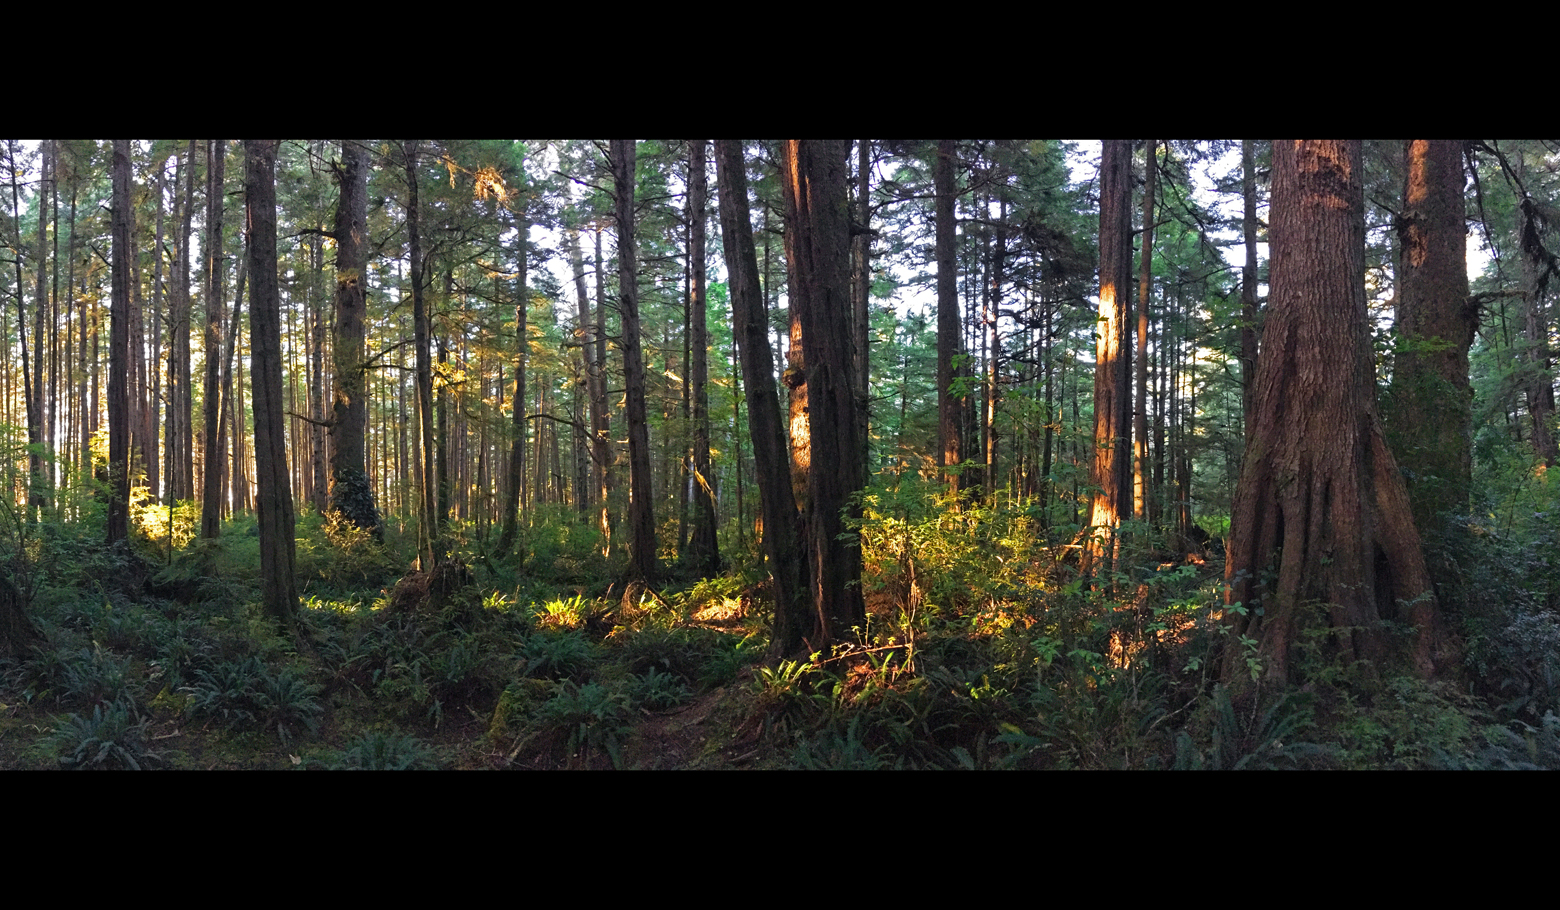 Panoramic of the rainforest on Cape Alava with dense conifers and loads of ferns